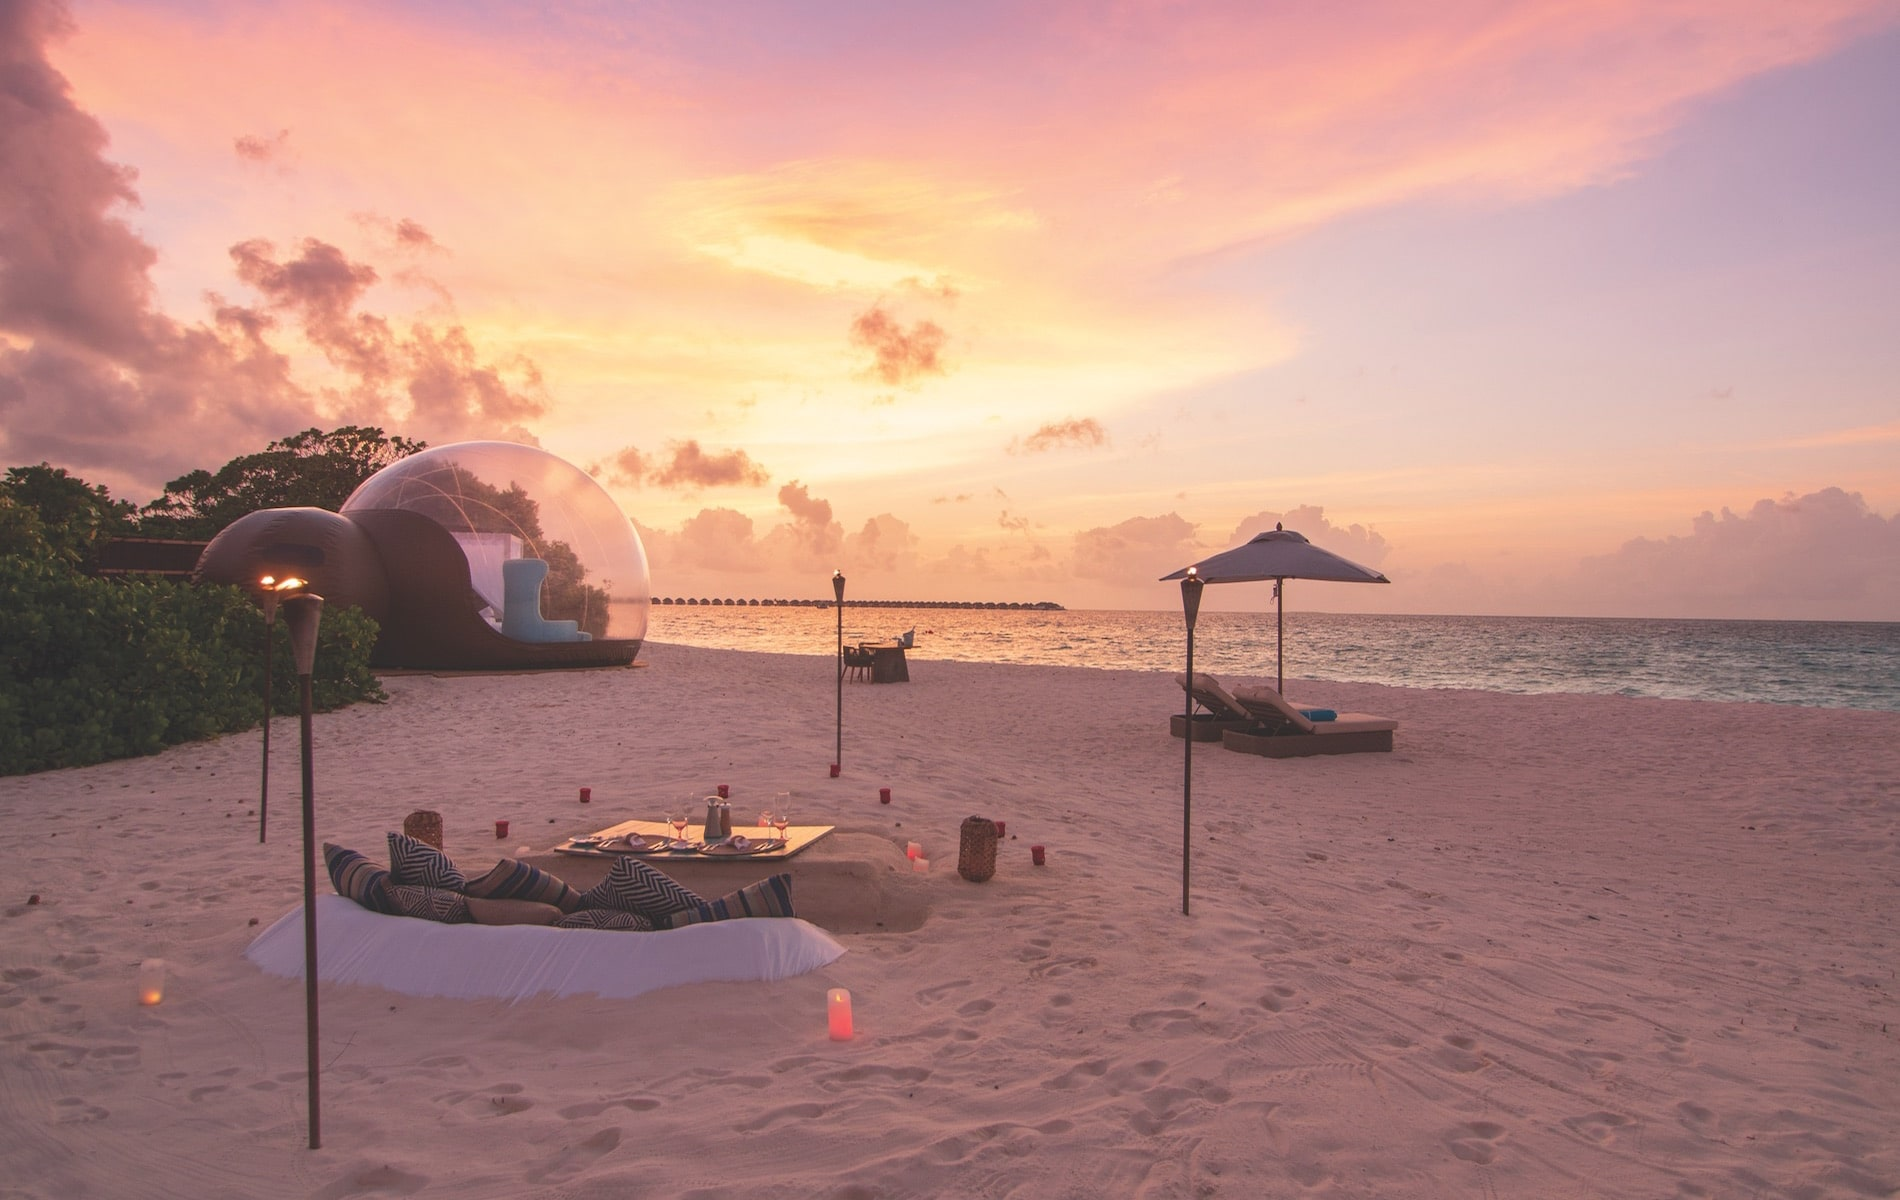 The Beach Bubble tent at Finolhu resort is the first of its kind in the Maldives, though the bubble hotel trend is sweeping the globe.